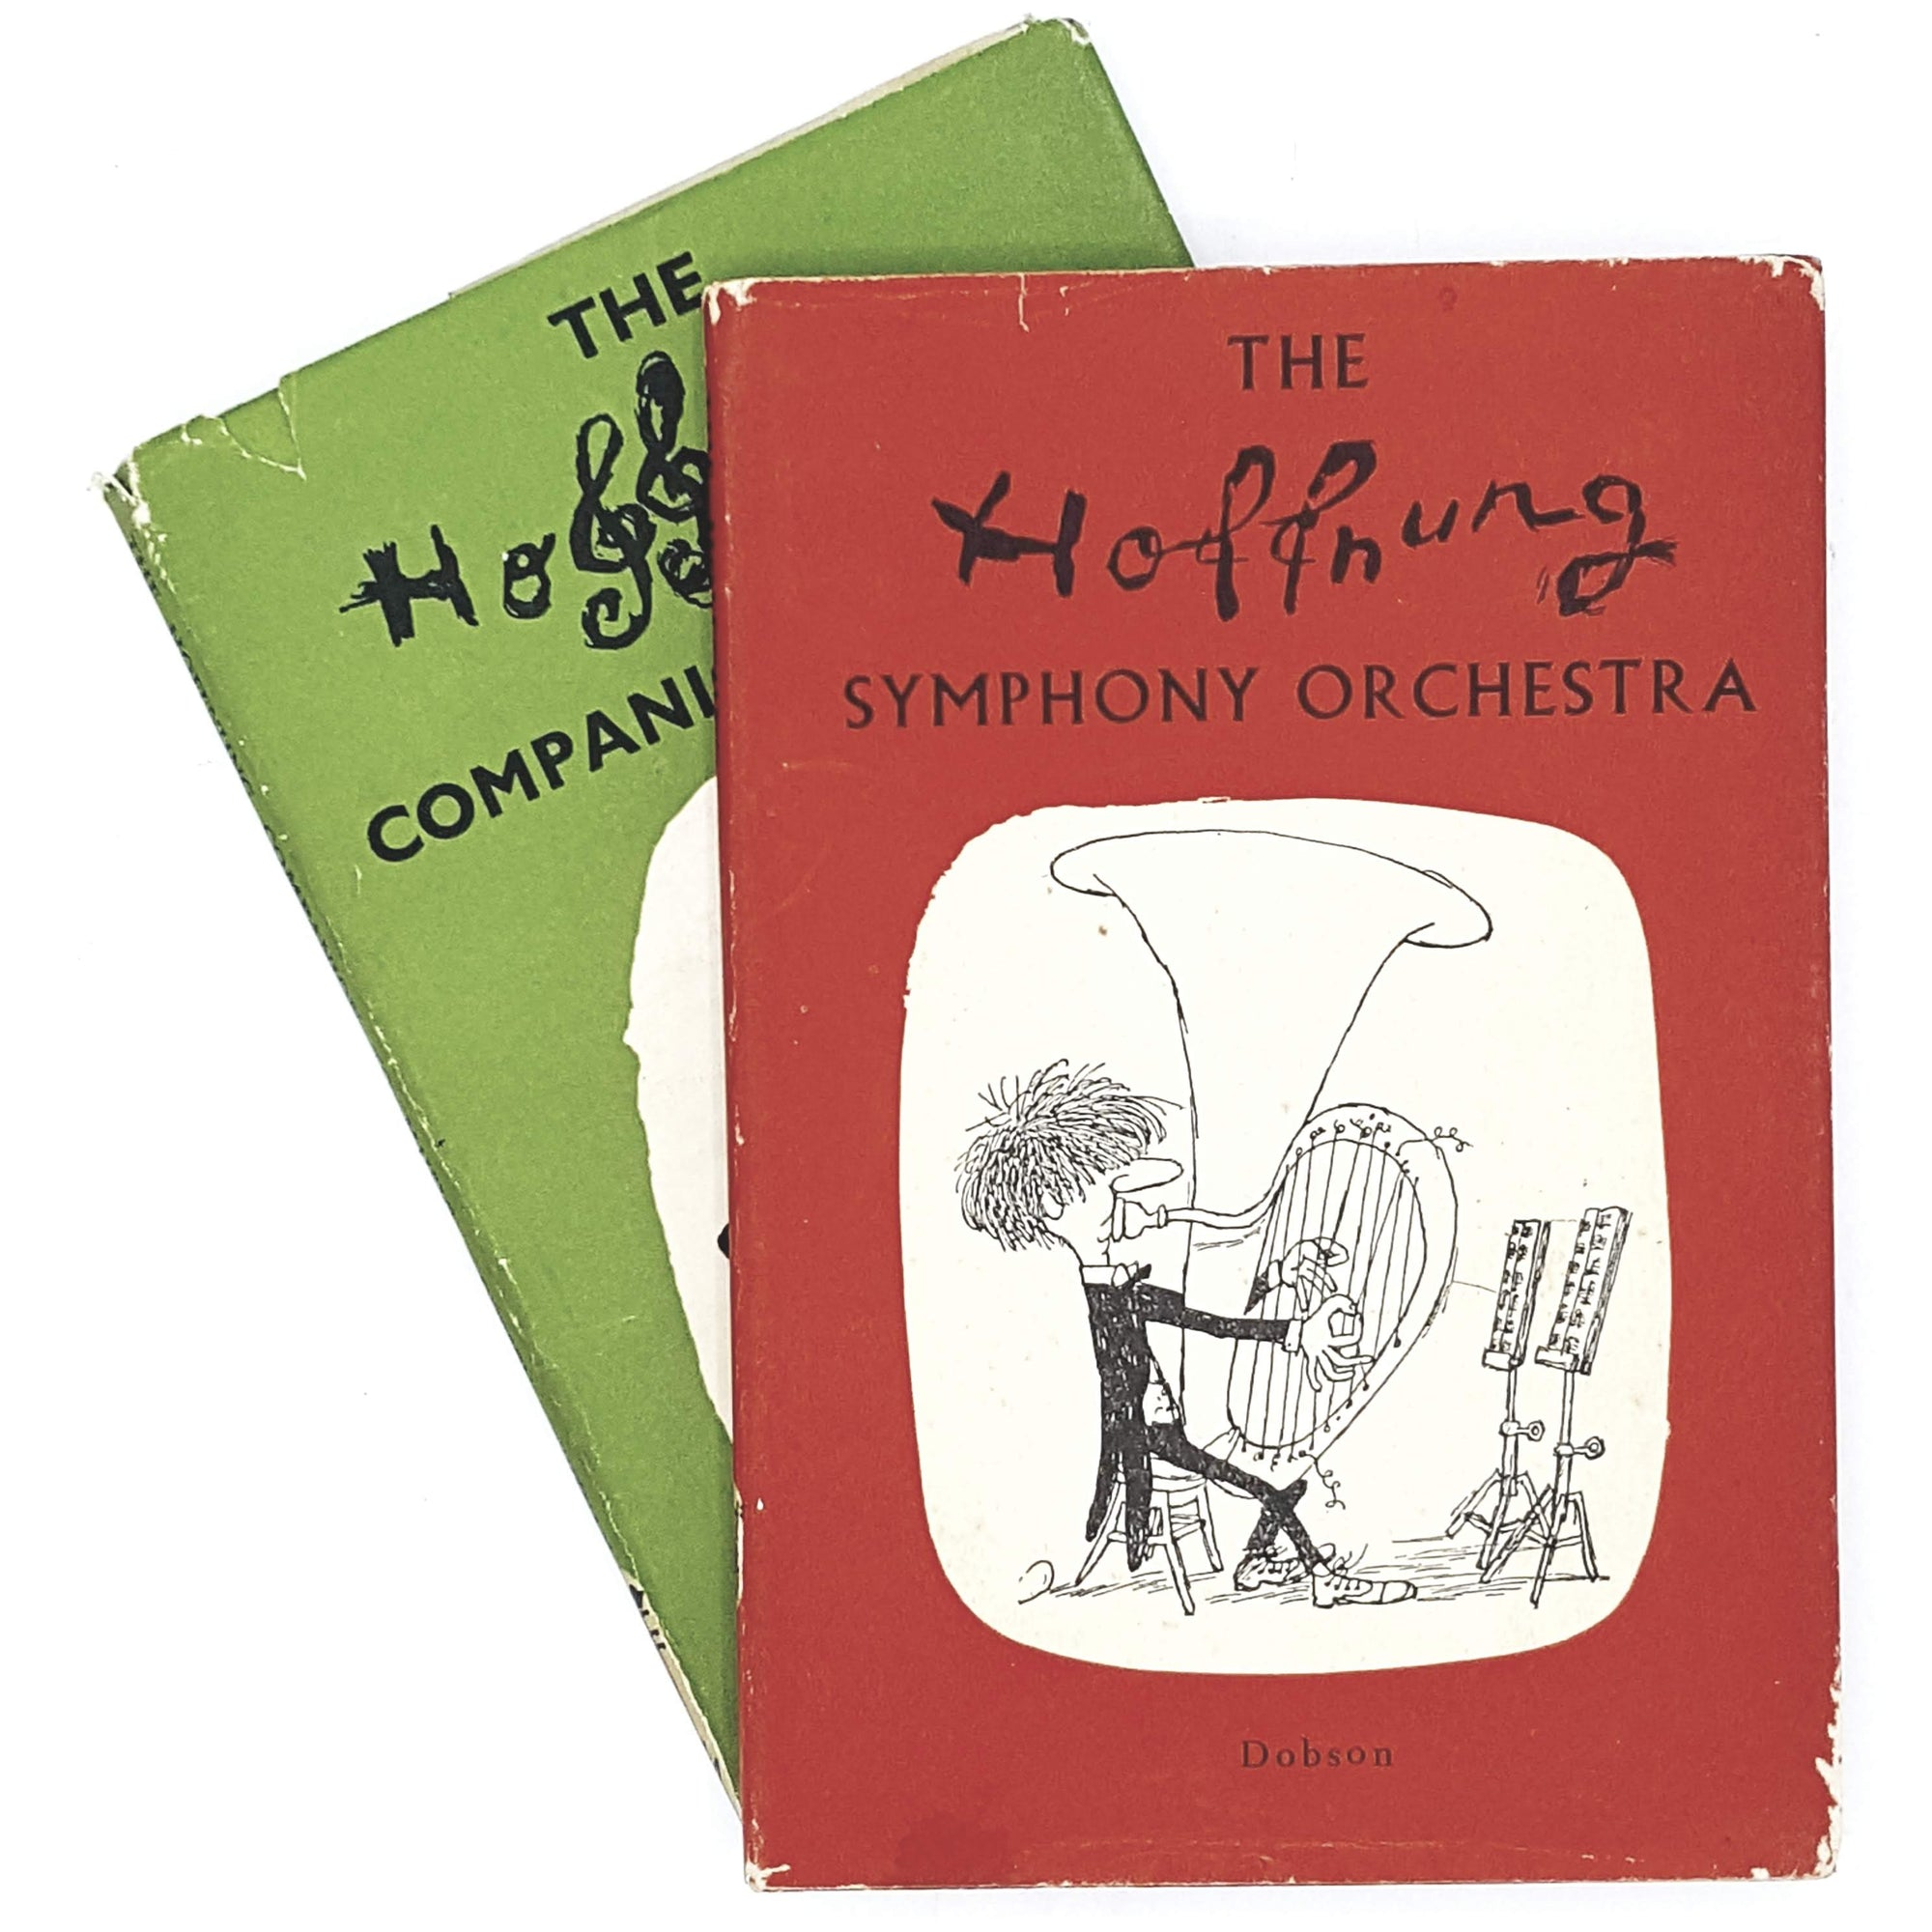 Collection Hoffnung Companion to Music and Symphony Orchestra 1955 - 1957